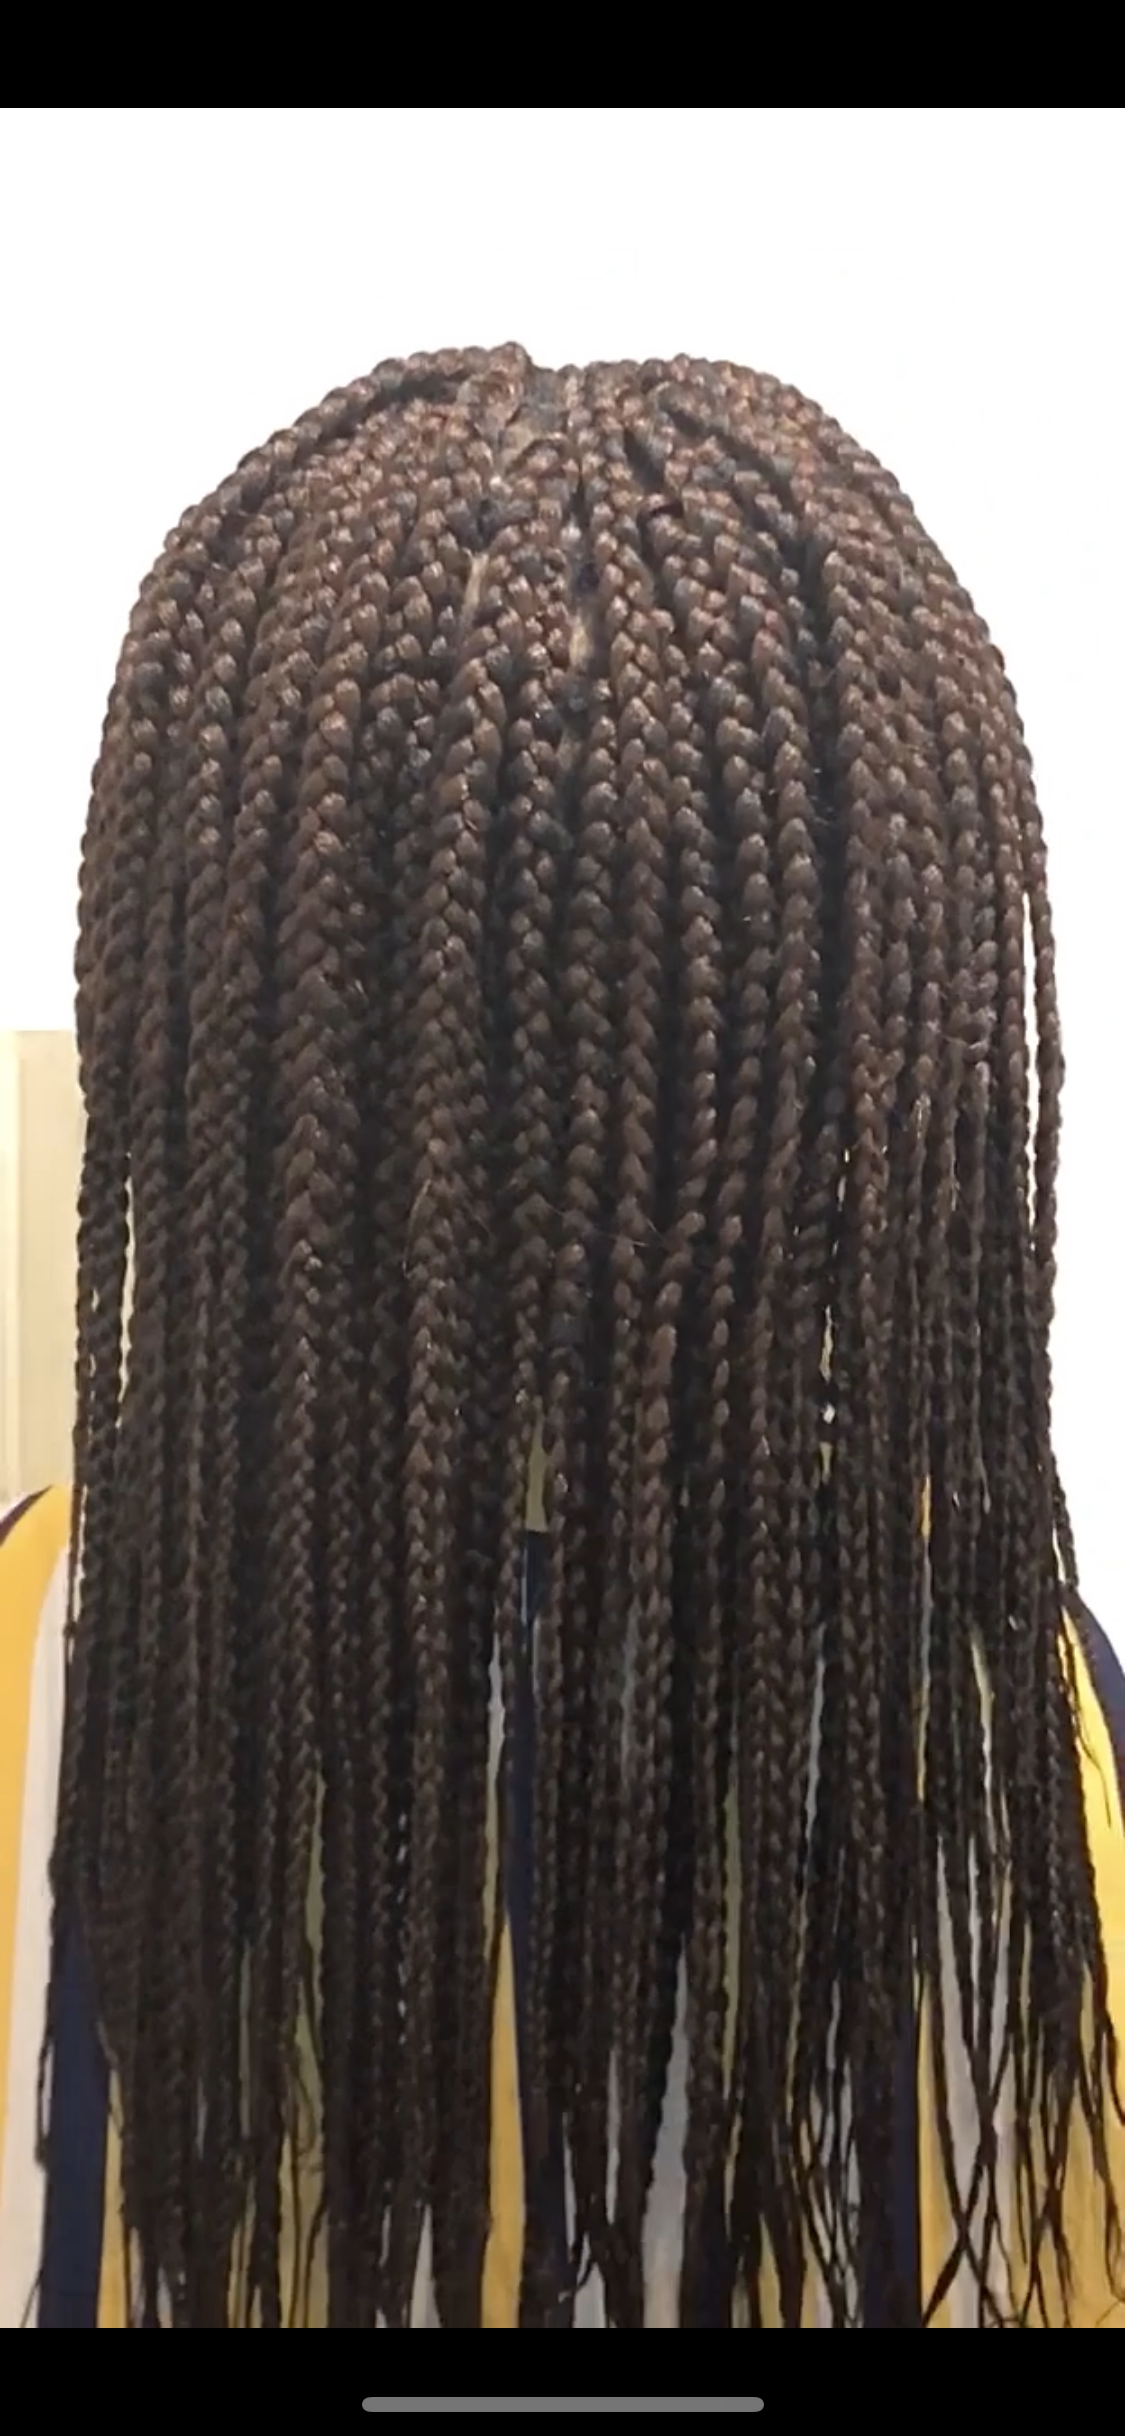 salon de coiffure afro tresse tresses box braids crochet braids vanilles tissages paris 75 77 78 91 92 93 94 95 REMAQXYB